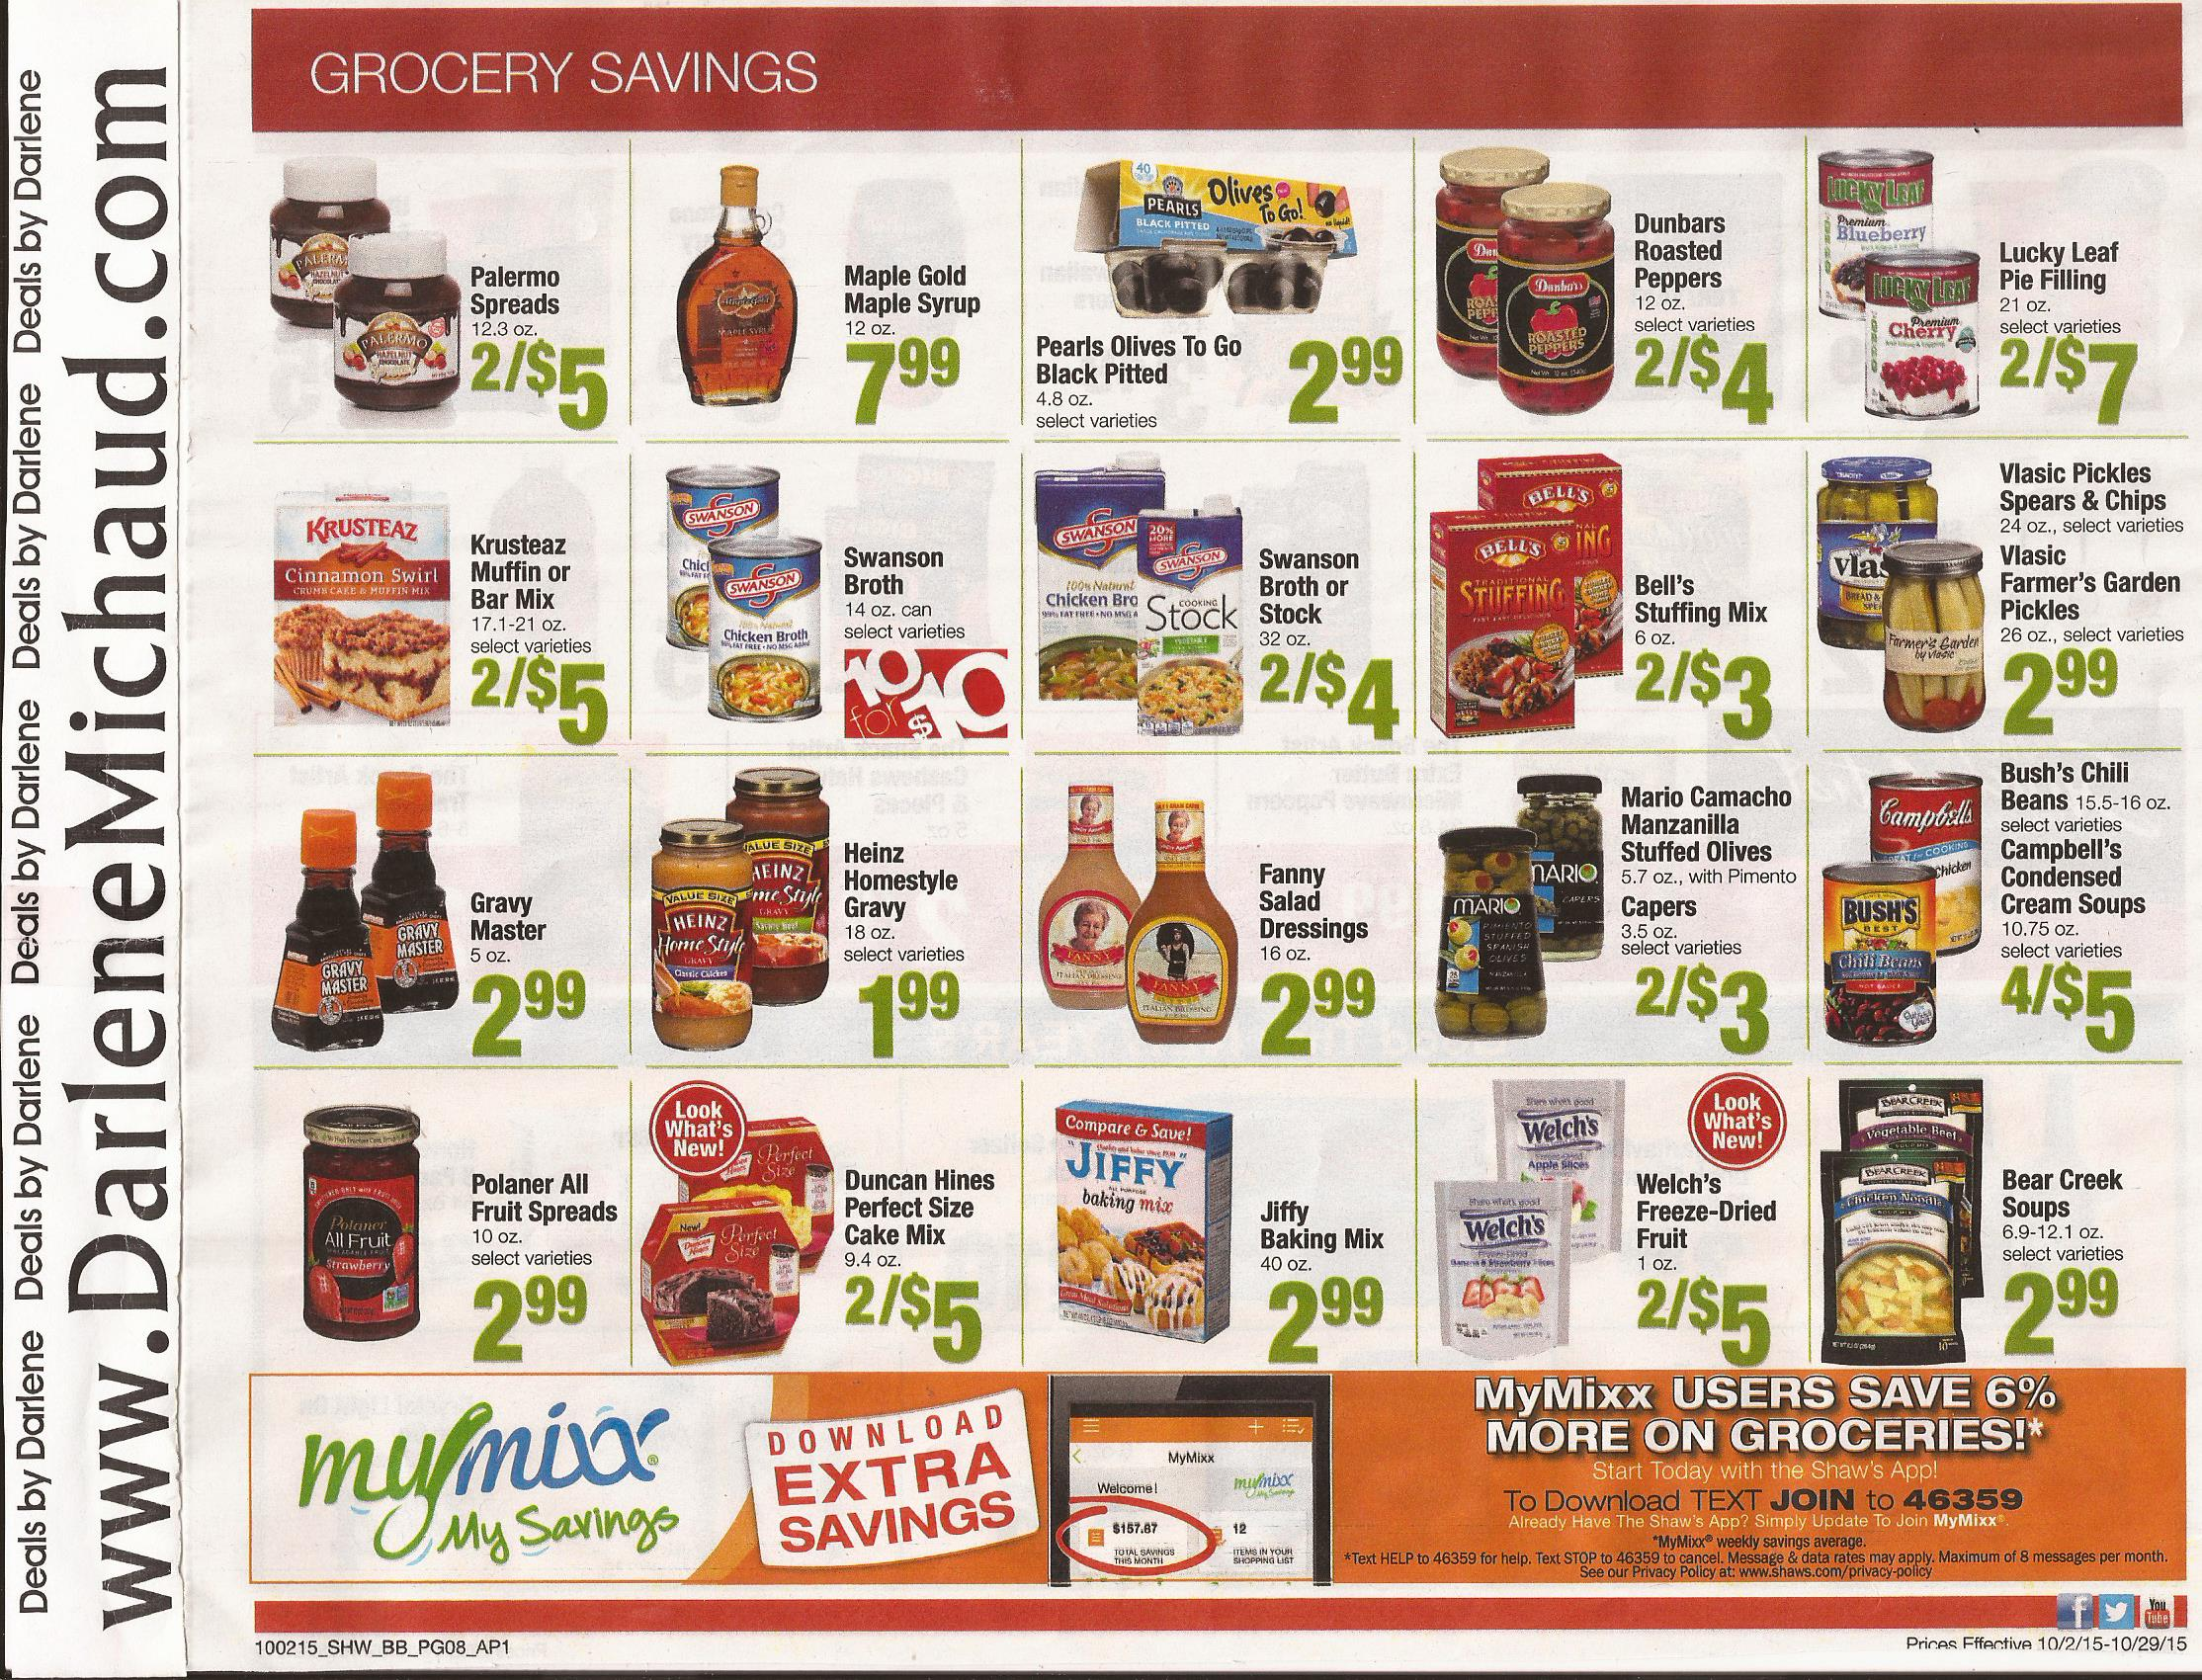 shaws-big-book-savings-10-2-10-29-page-08